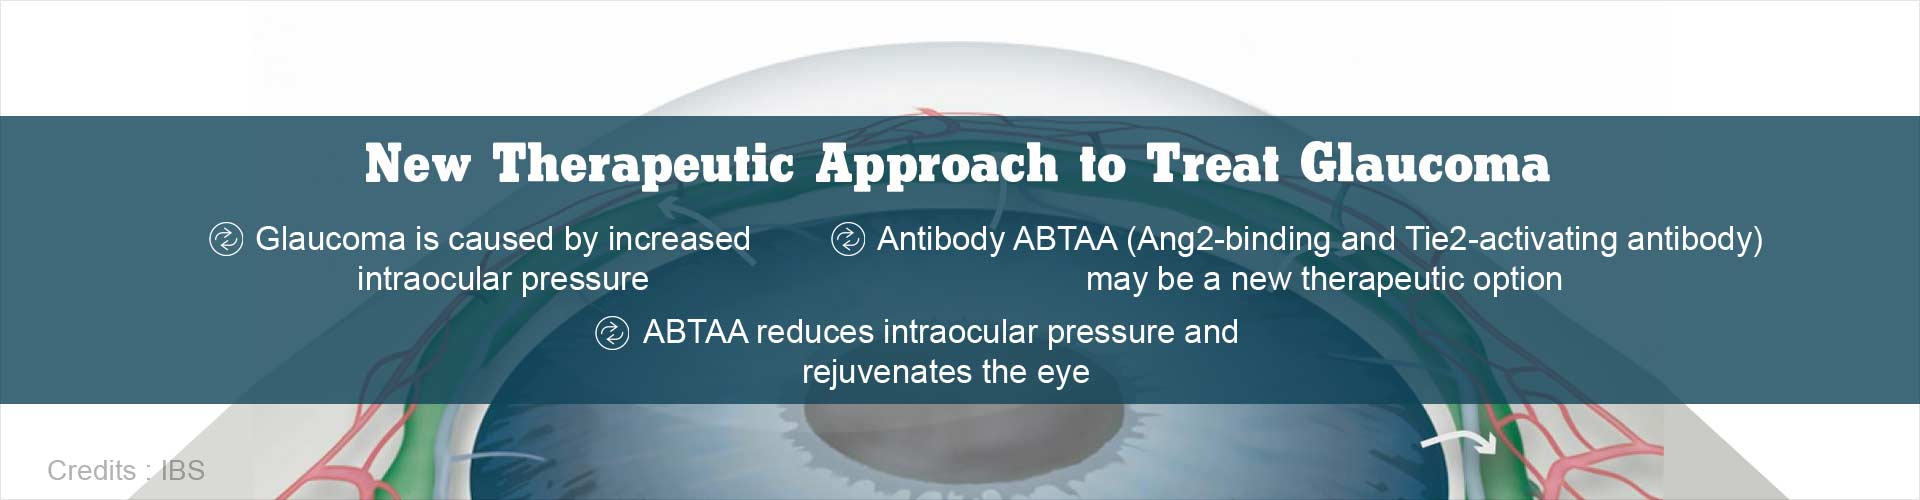 Glaucoma: Antibody Treatment may Reduce Intraocular Pressure